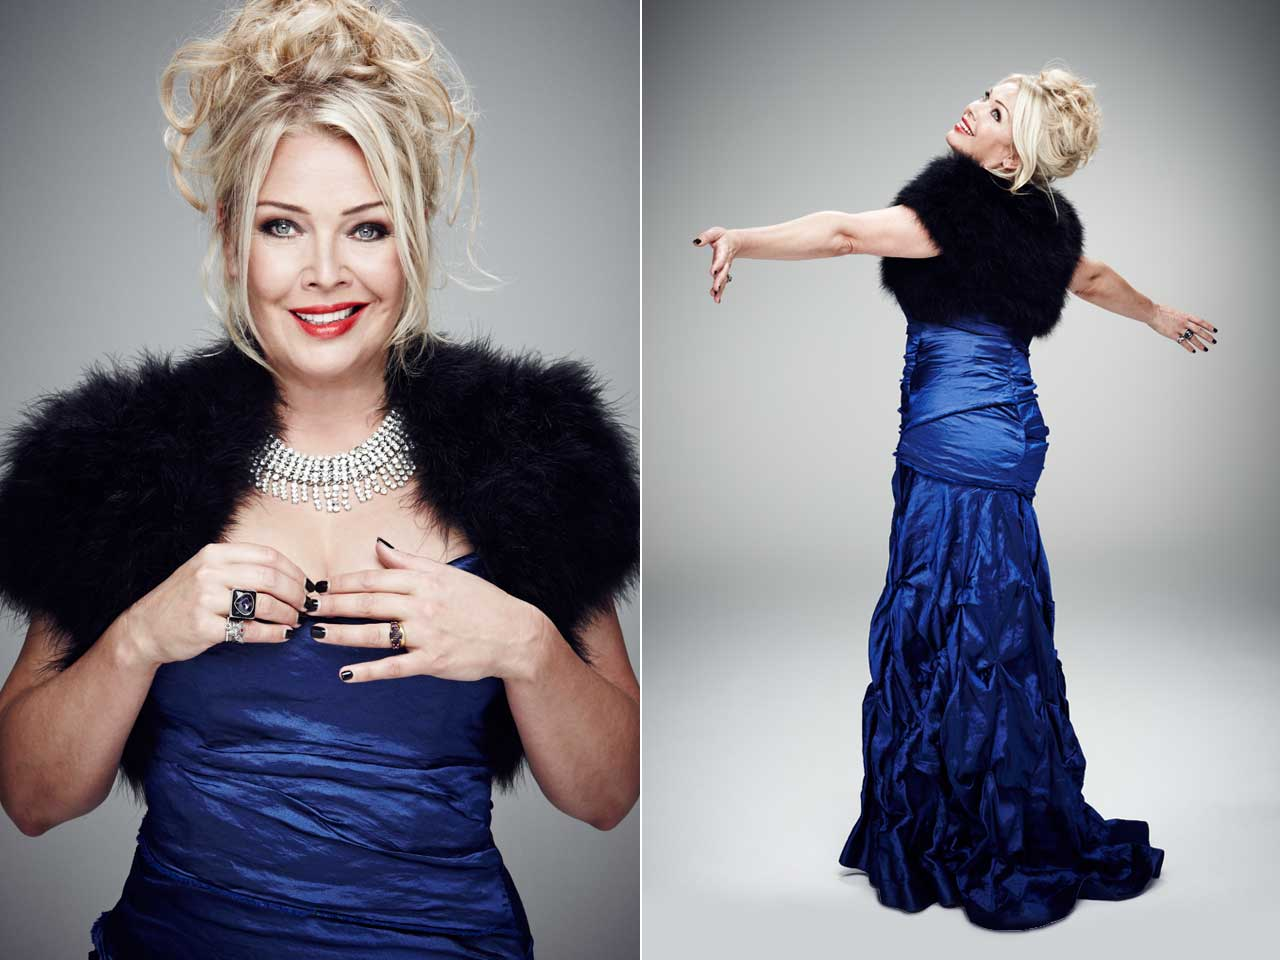 Kim Wilde poses in an elaborate blue dress